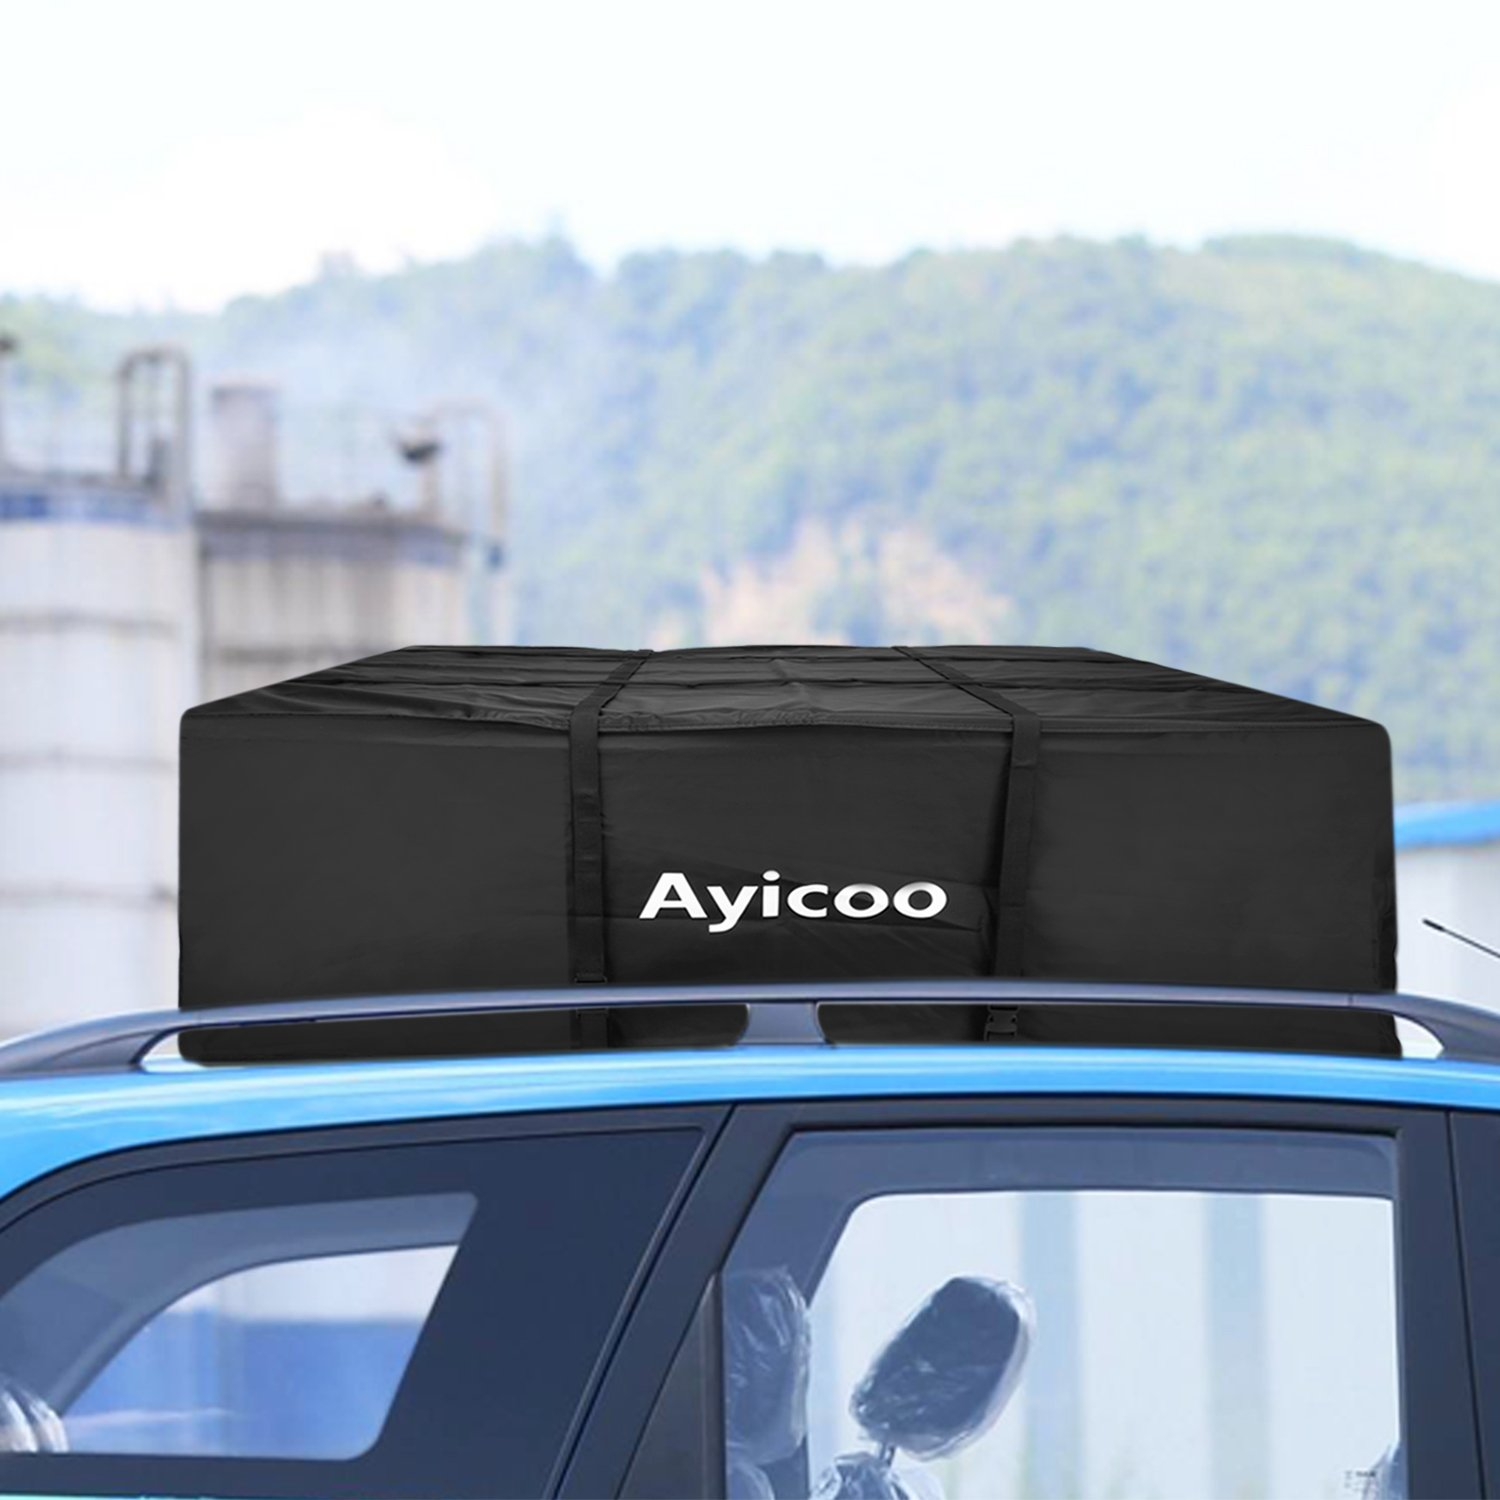 Ayicoo Upgrade Waterproof Car Rooftop Cargo Carrier Bag for SUV Jeep Truck Extra Large 21 Cubic Feet